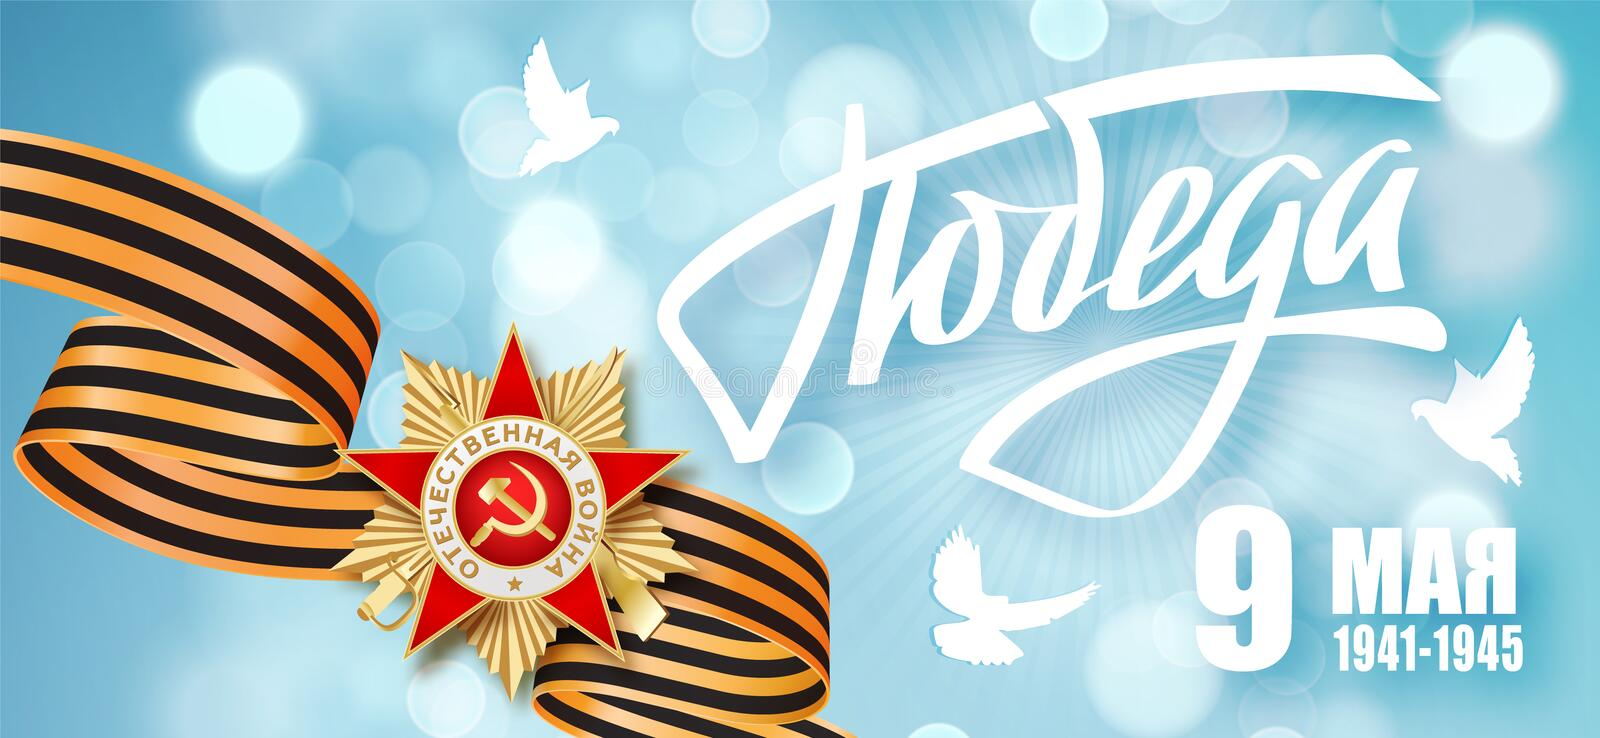 May 9 russian holiday victory day. Russian translation of the inscription May 9 Victory. Happy Victory Day. 1941-1945 vector illustration